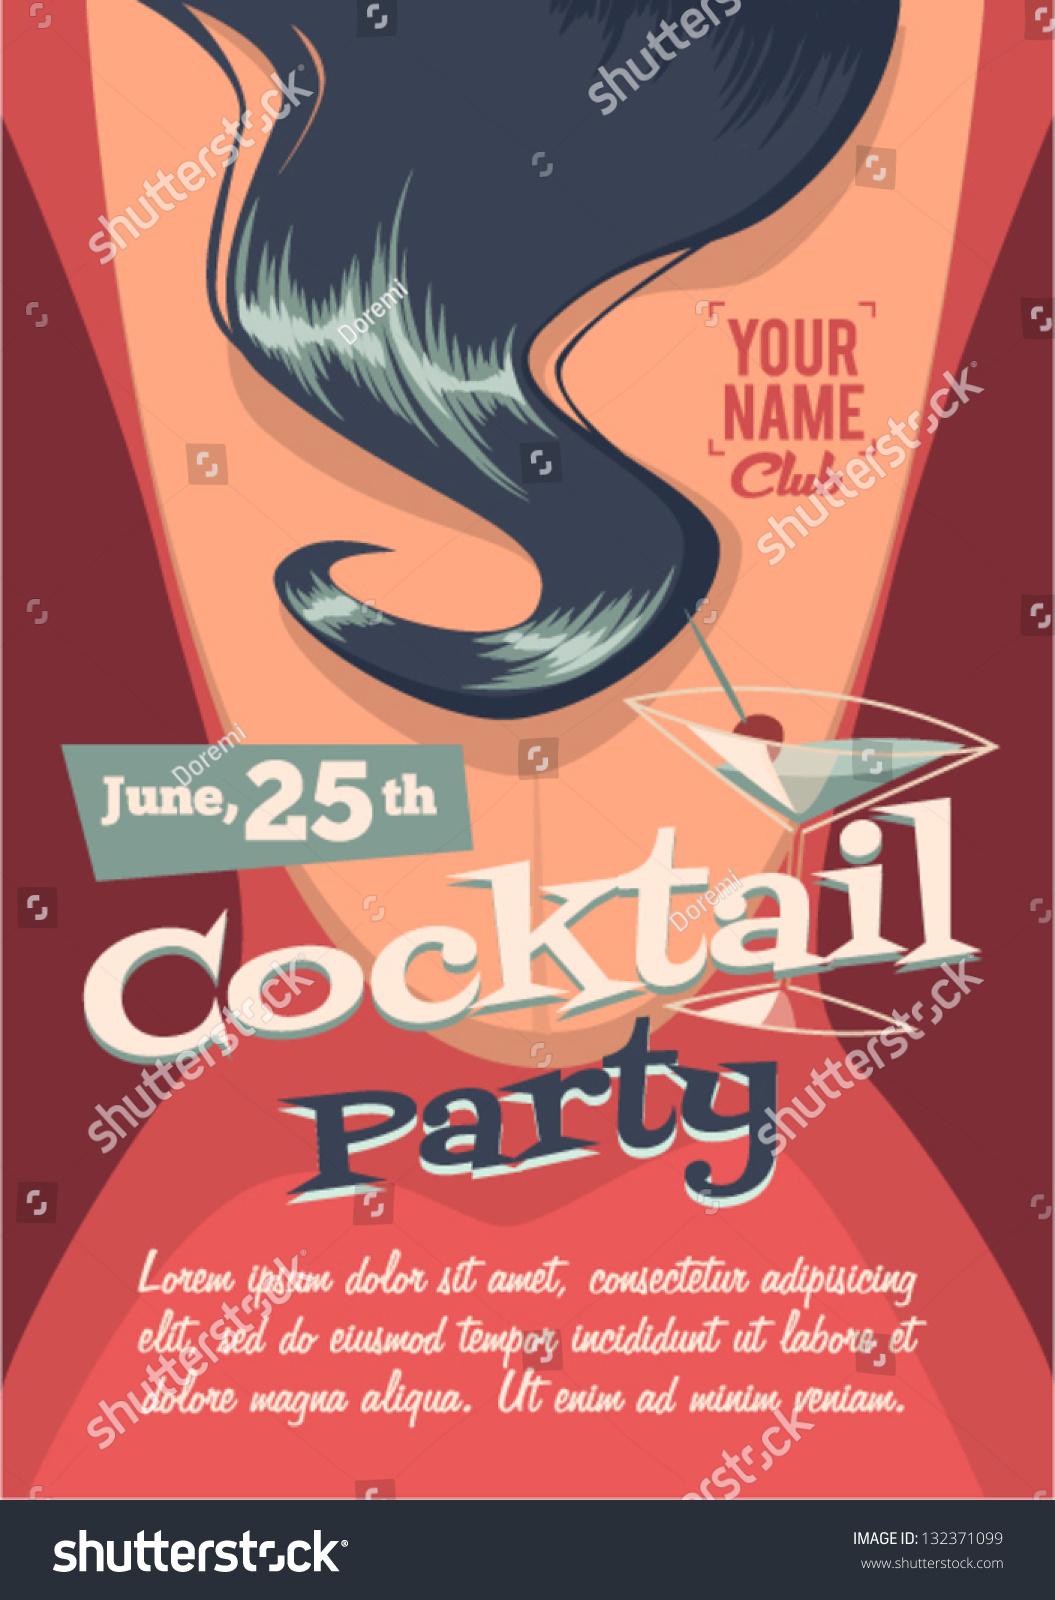 cocktail party poster stock vector illustration 132371099   shutterstock